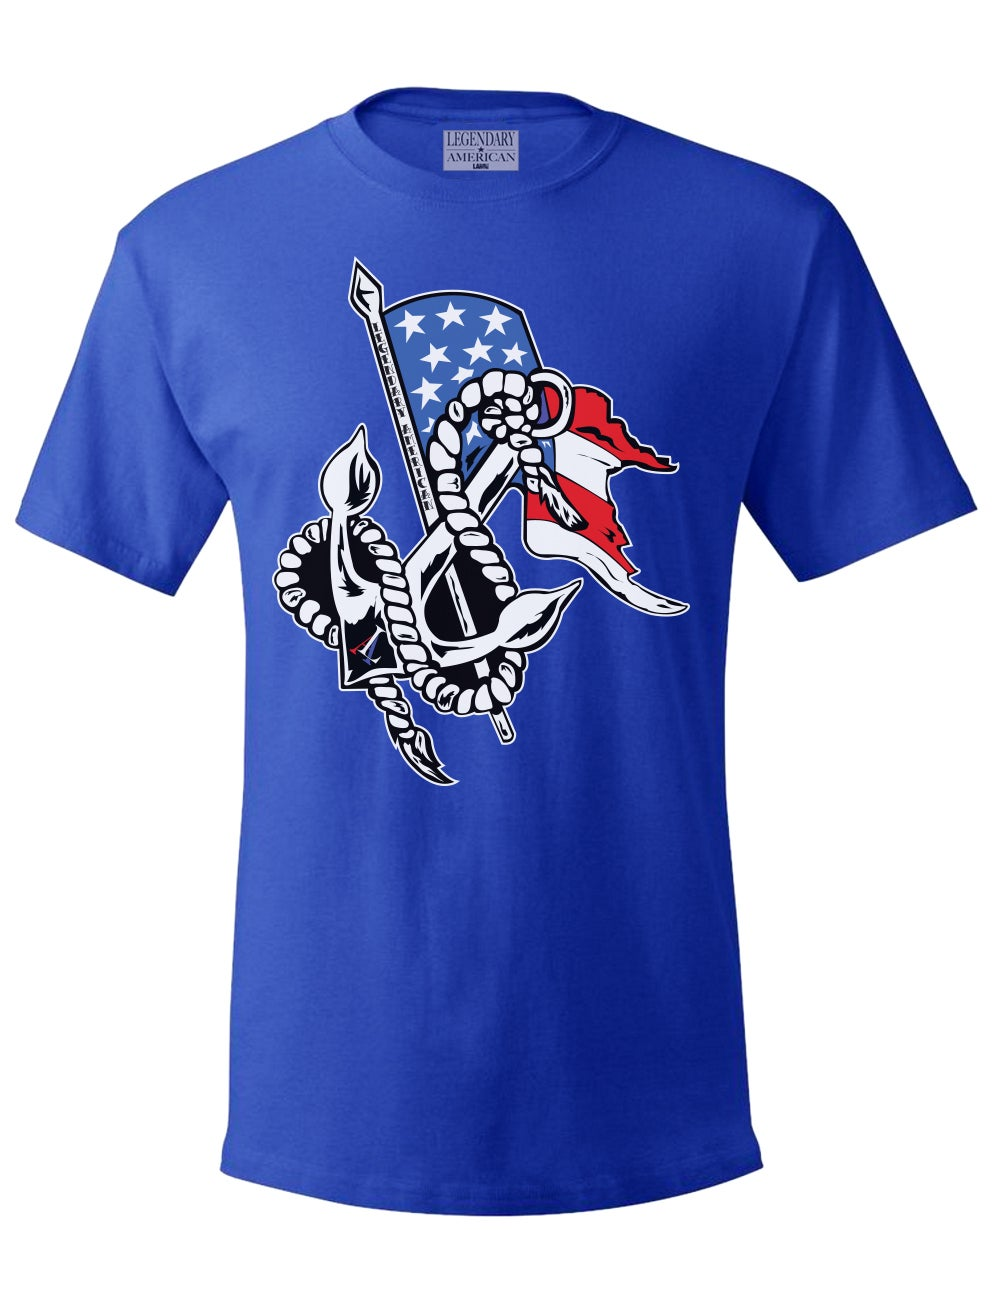 Image of Legendary American Anchor tee in blue